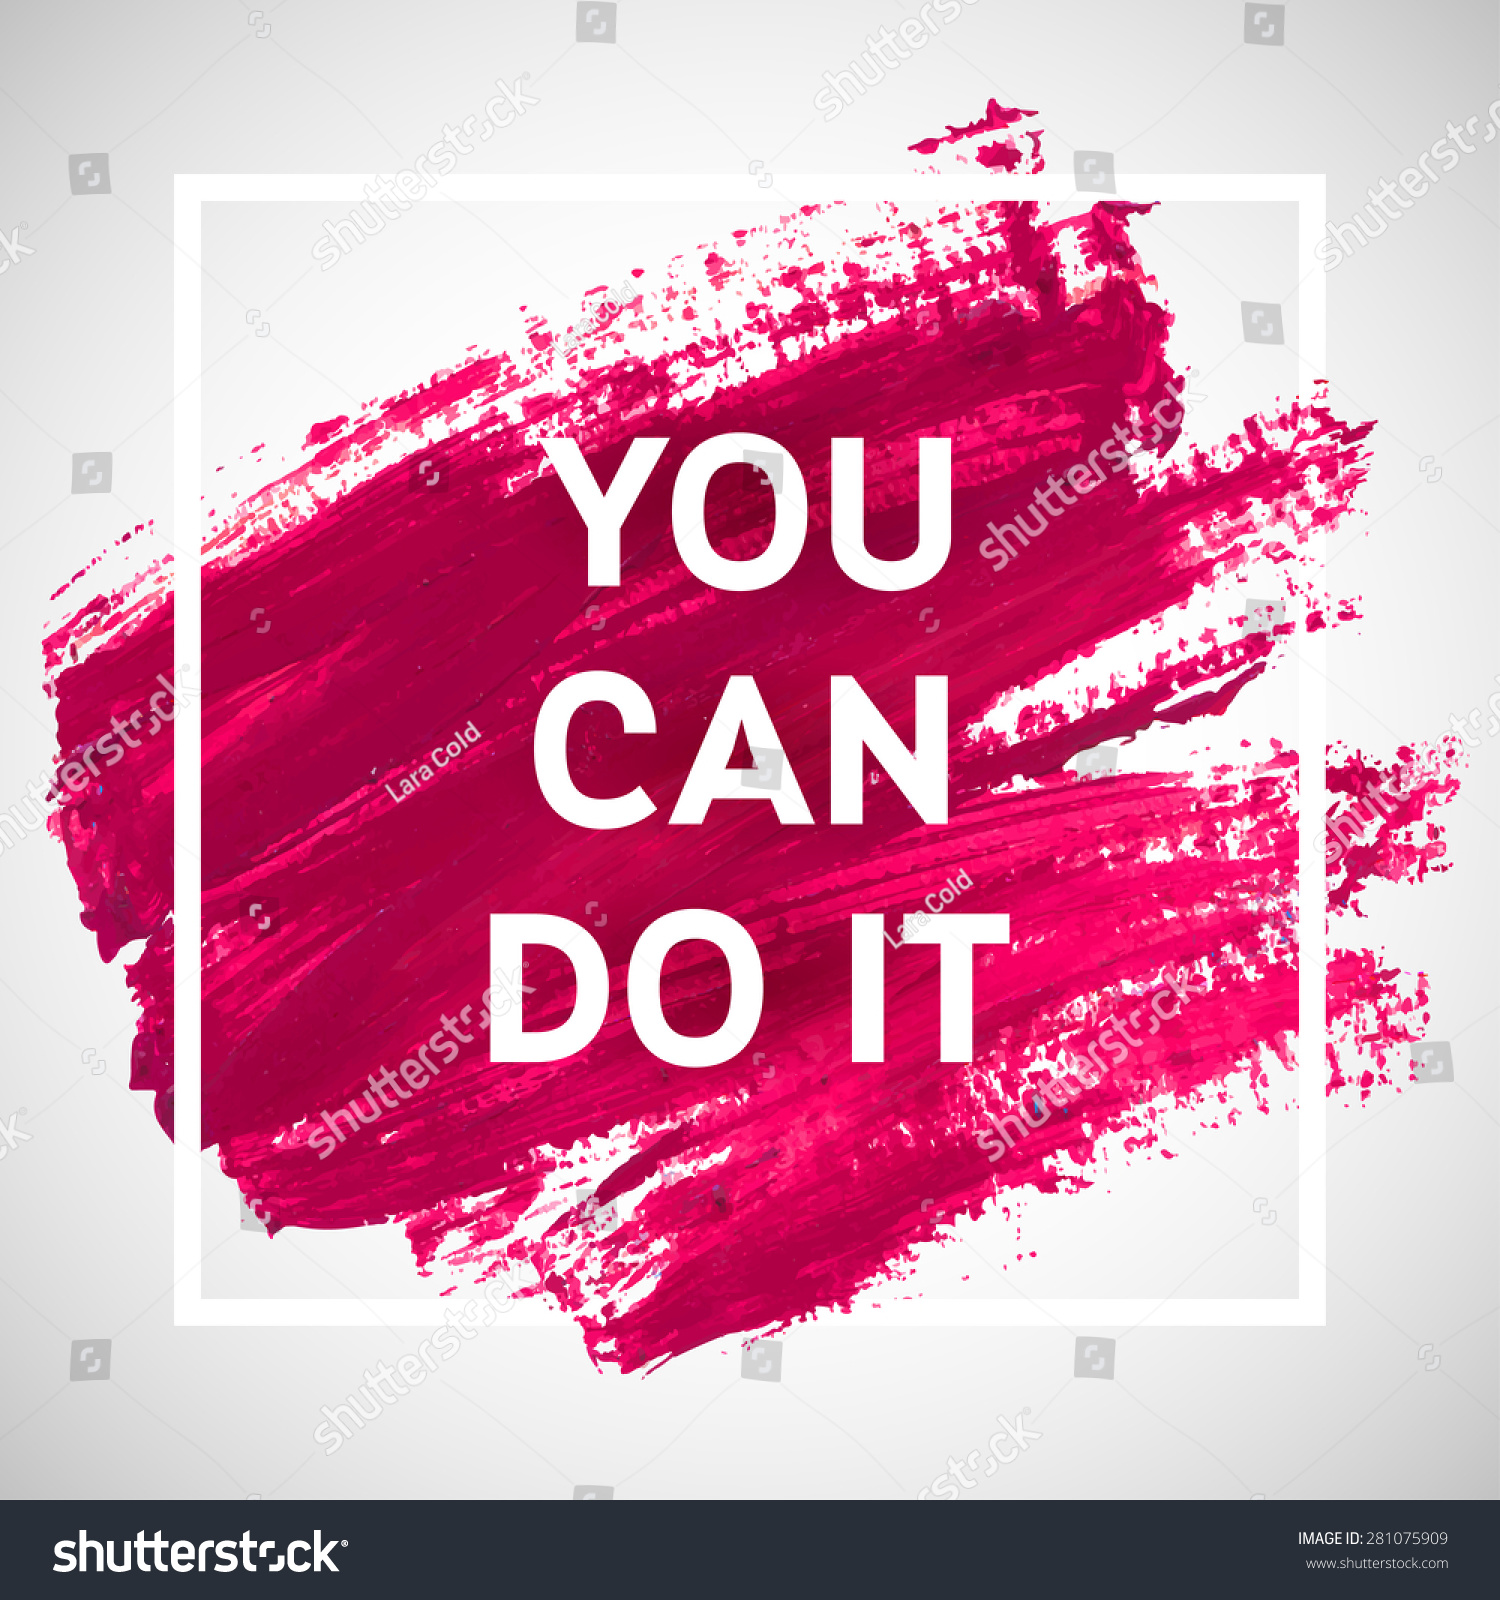 You Can Do Motivation Square Acrylic Stock Vector 281075909 ...